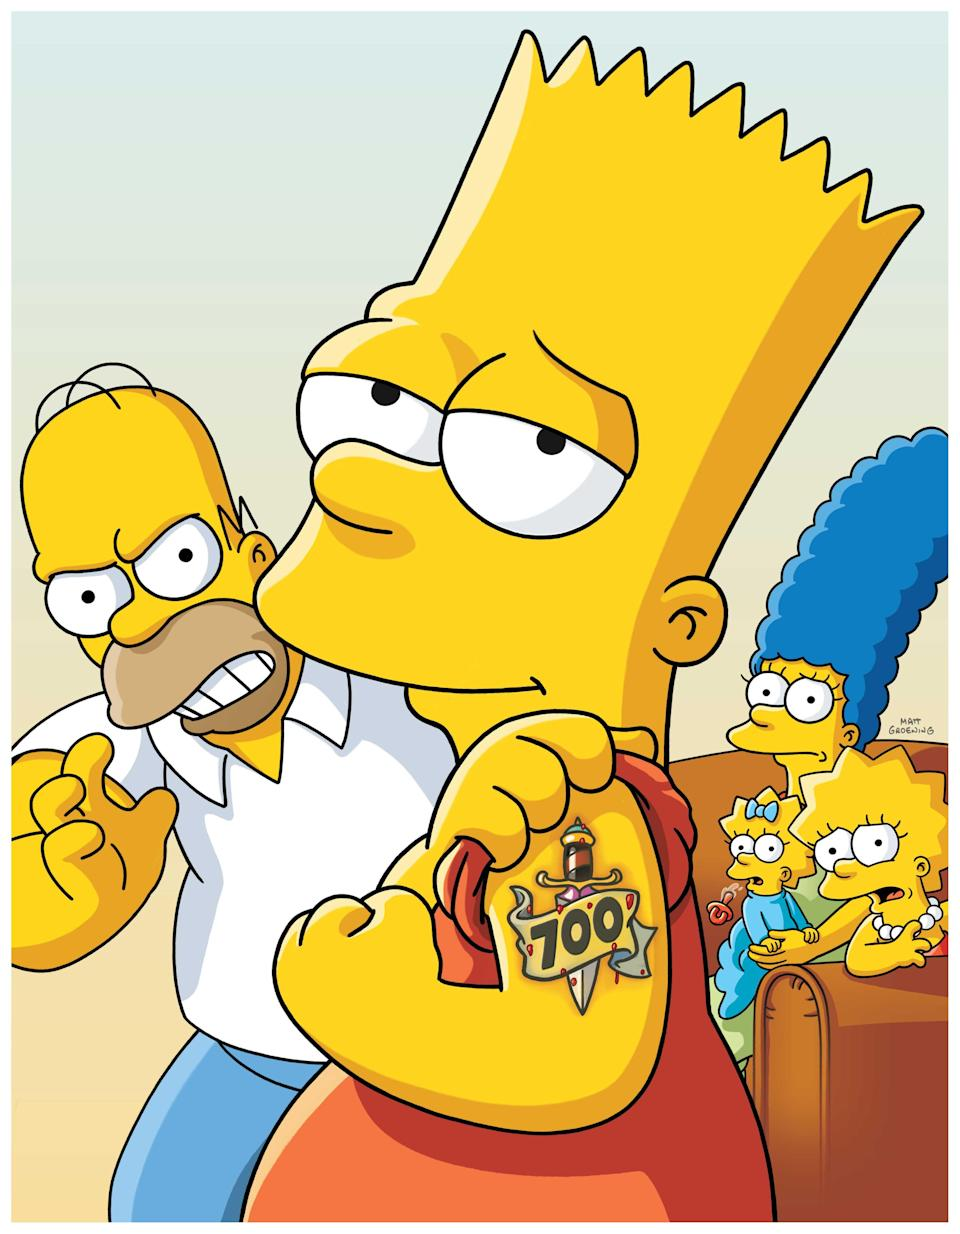 Of course, Bart Simpsons got a tattoo to celebrate the 700th episode of Fox's